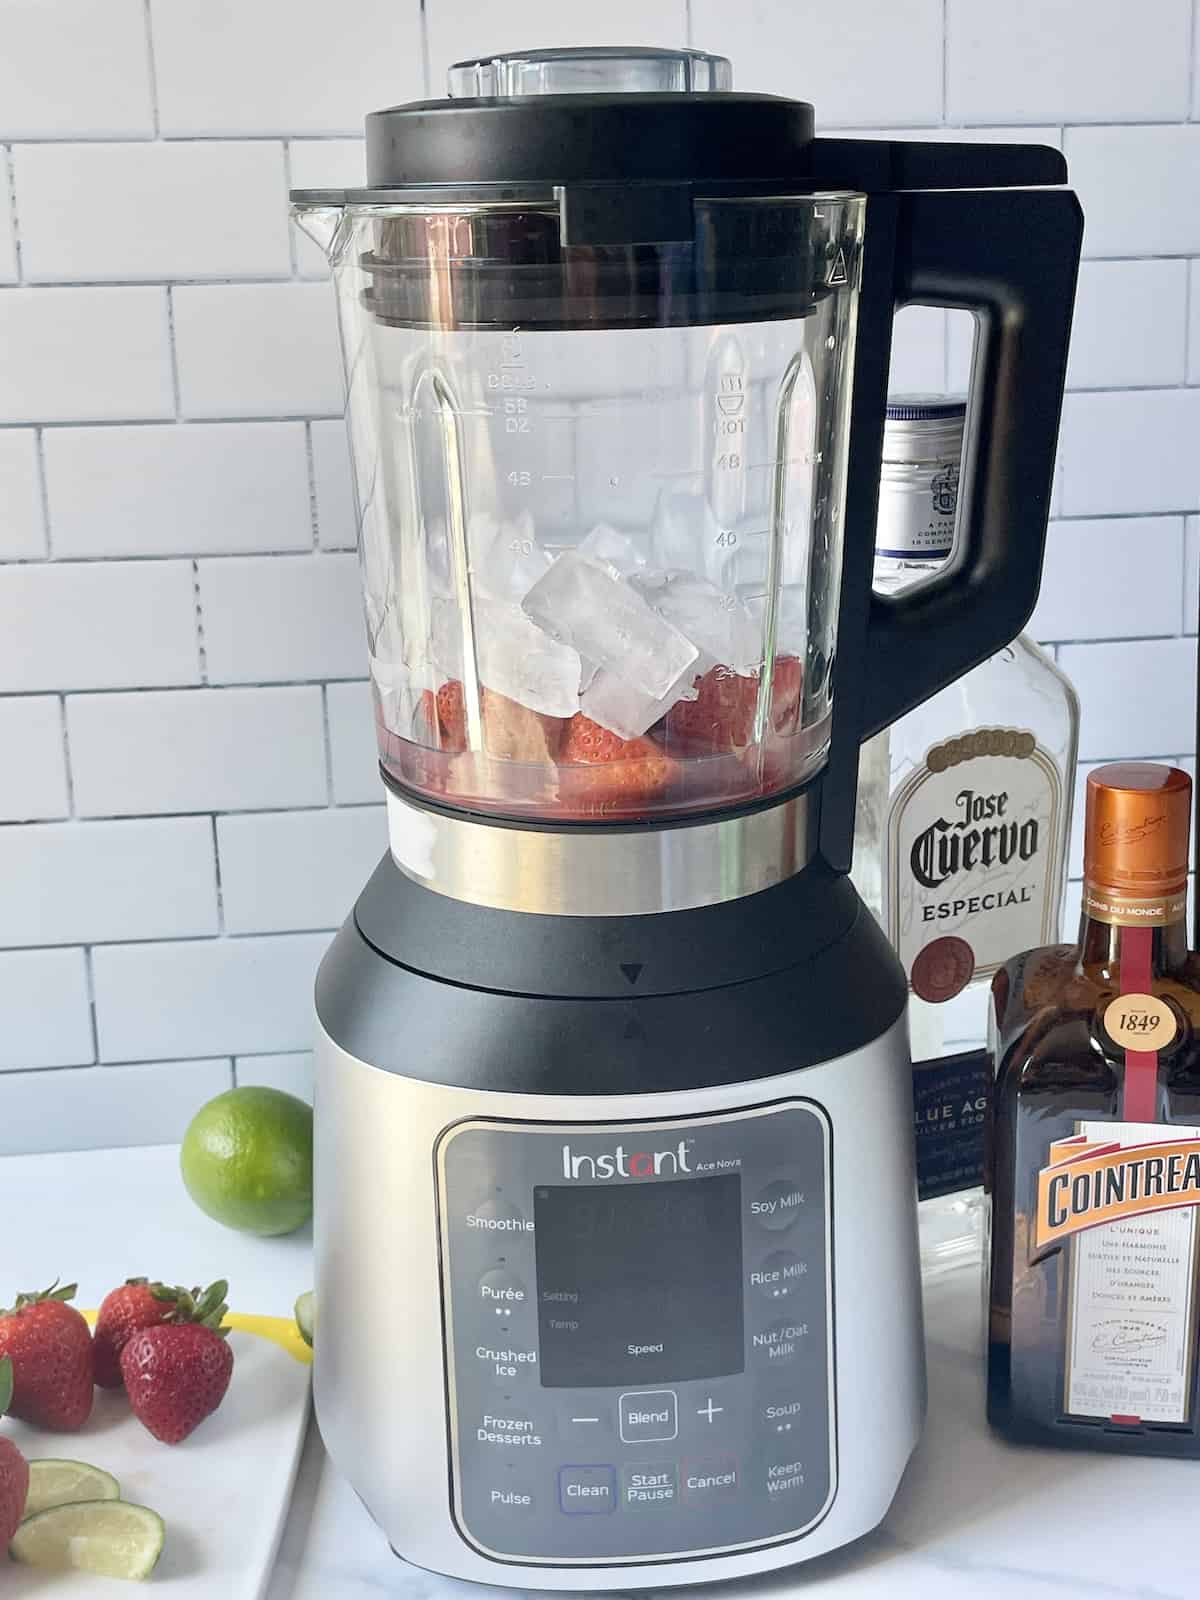 strawberries, alcohol, and ice in a blender